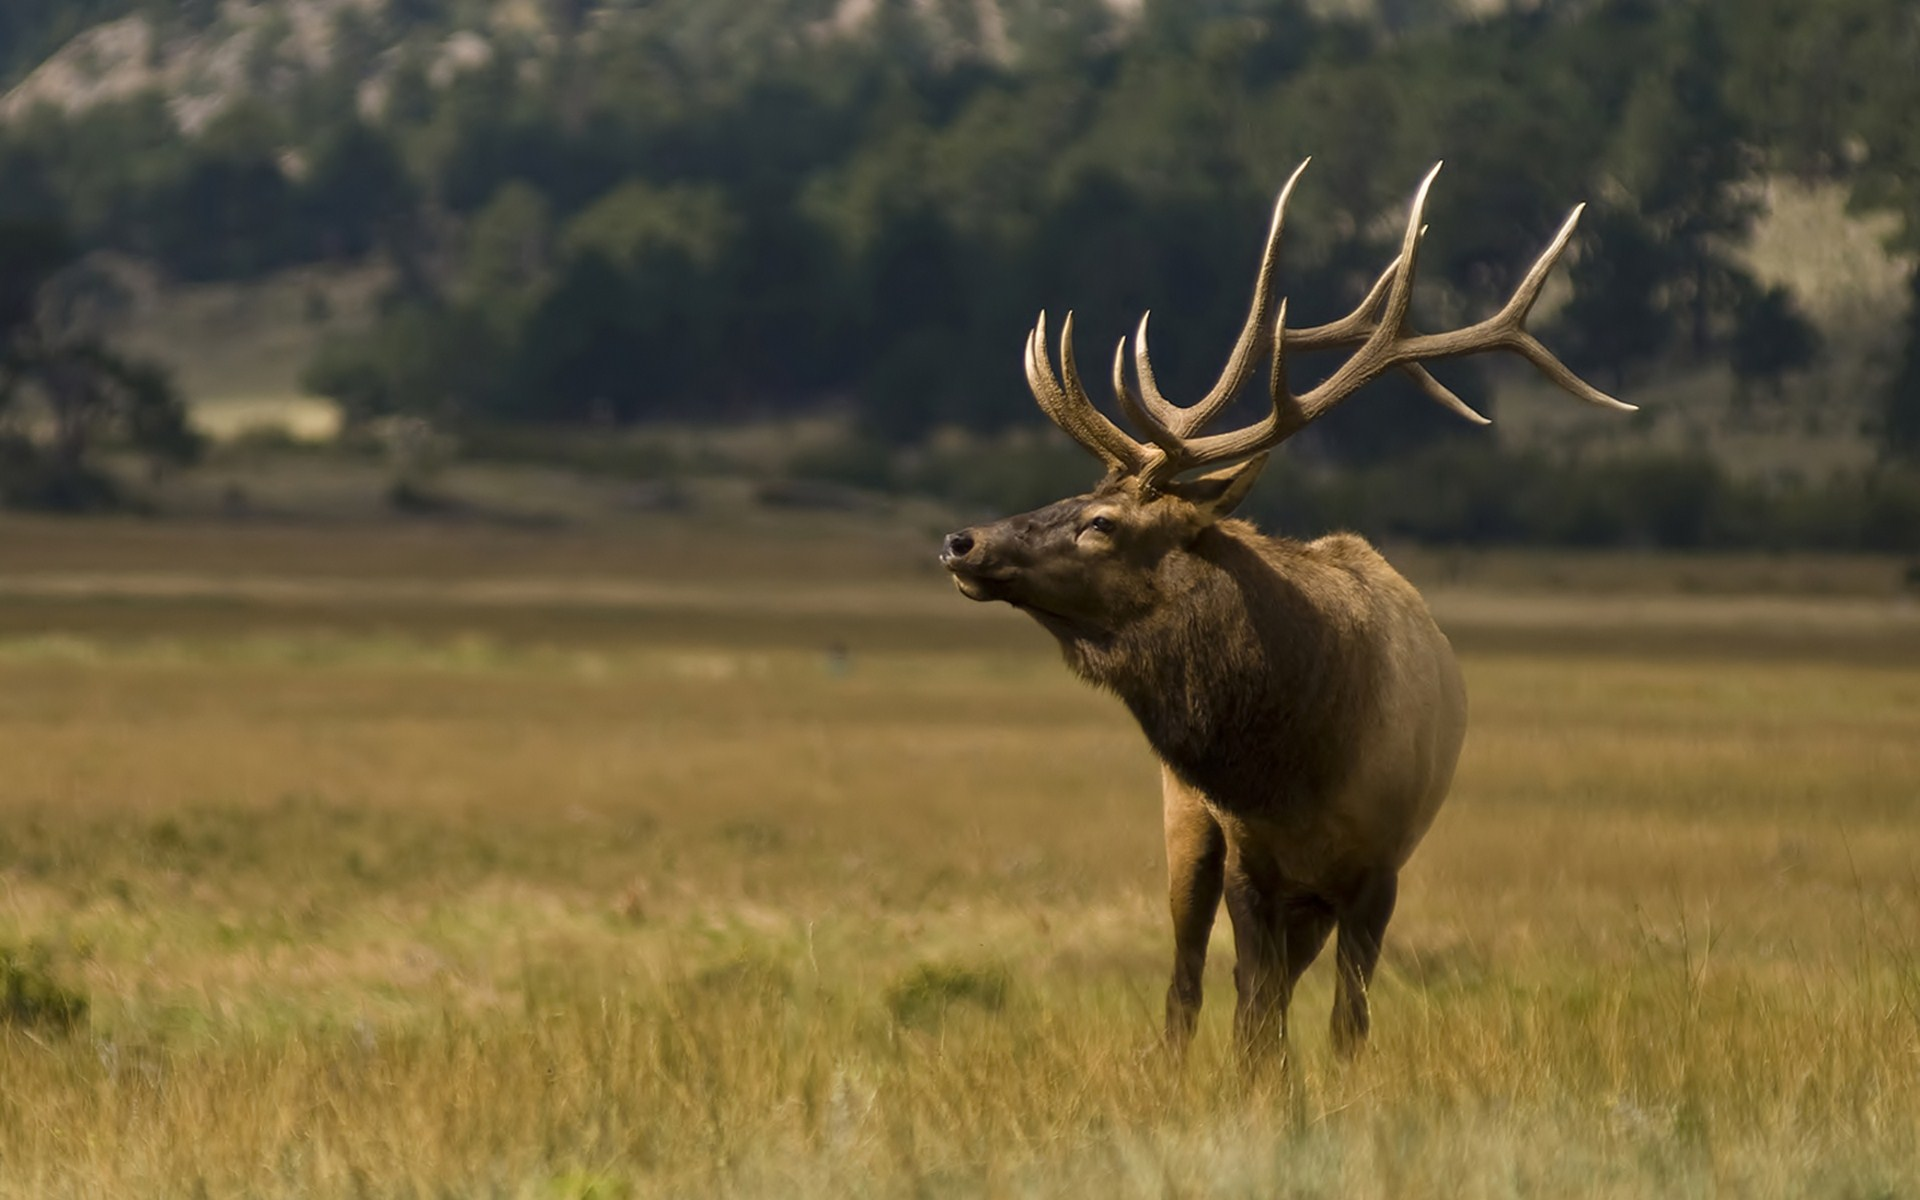 elk animal desktop wallpaper 49281 1920x1200 px ~ hdwallsource